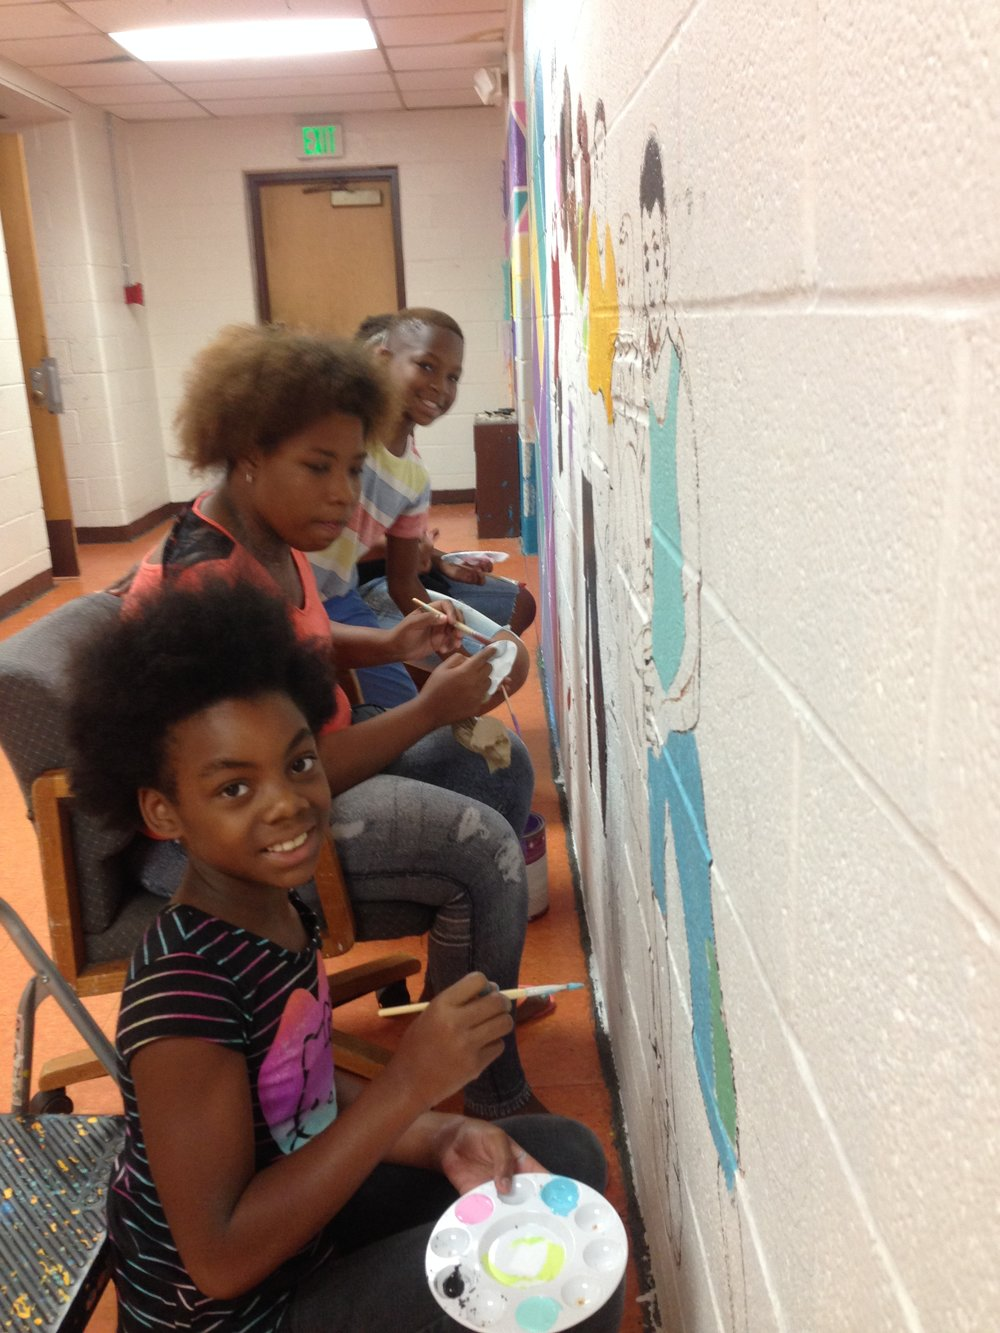 LJR artists working on their mural